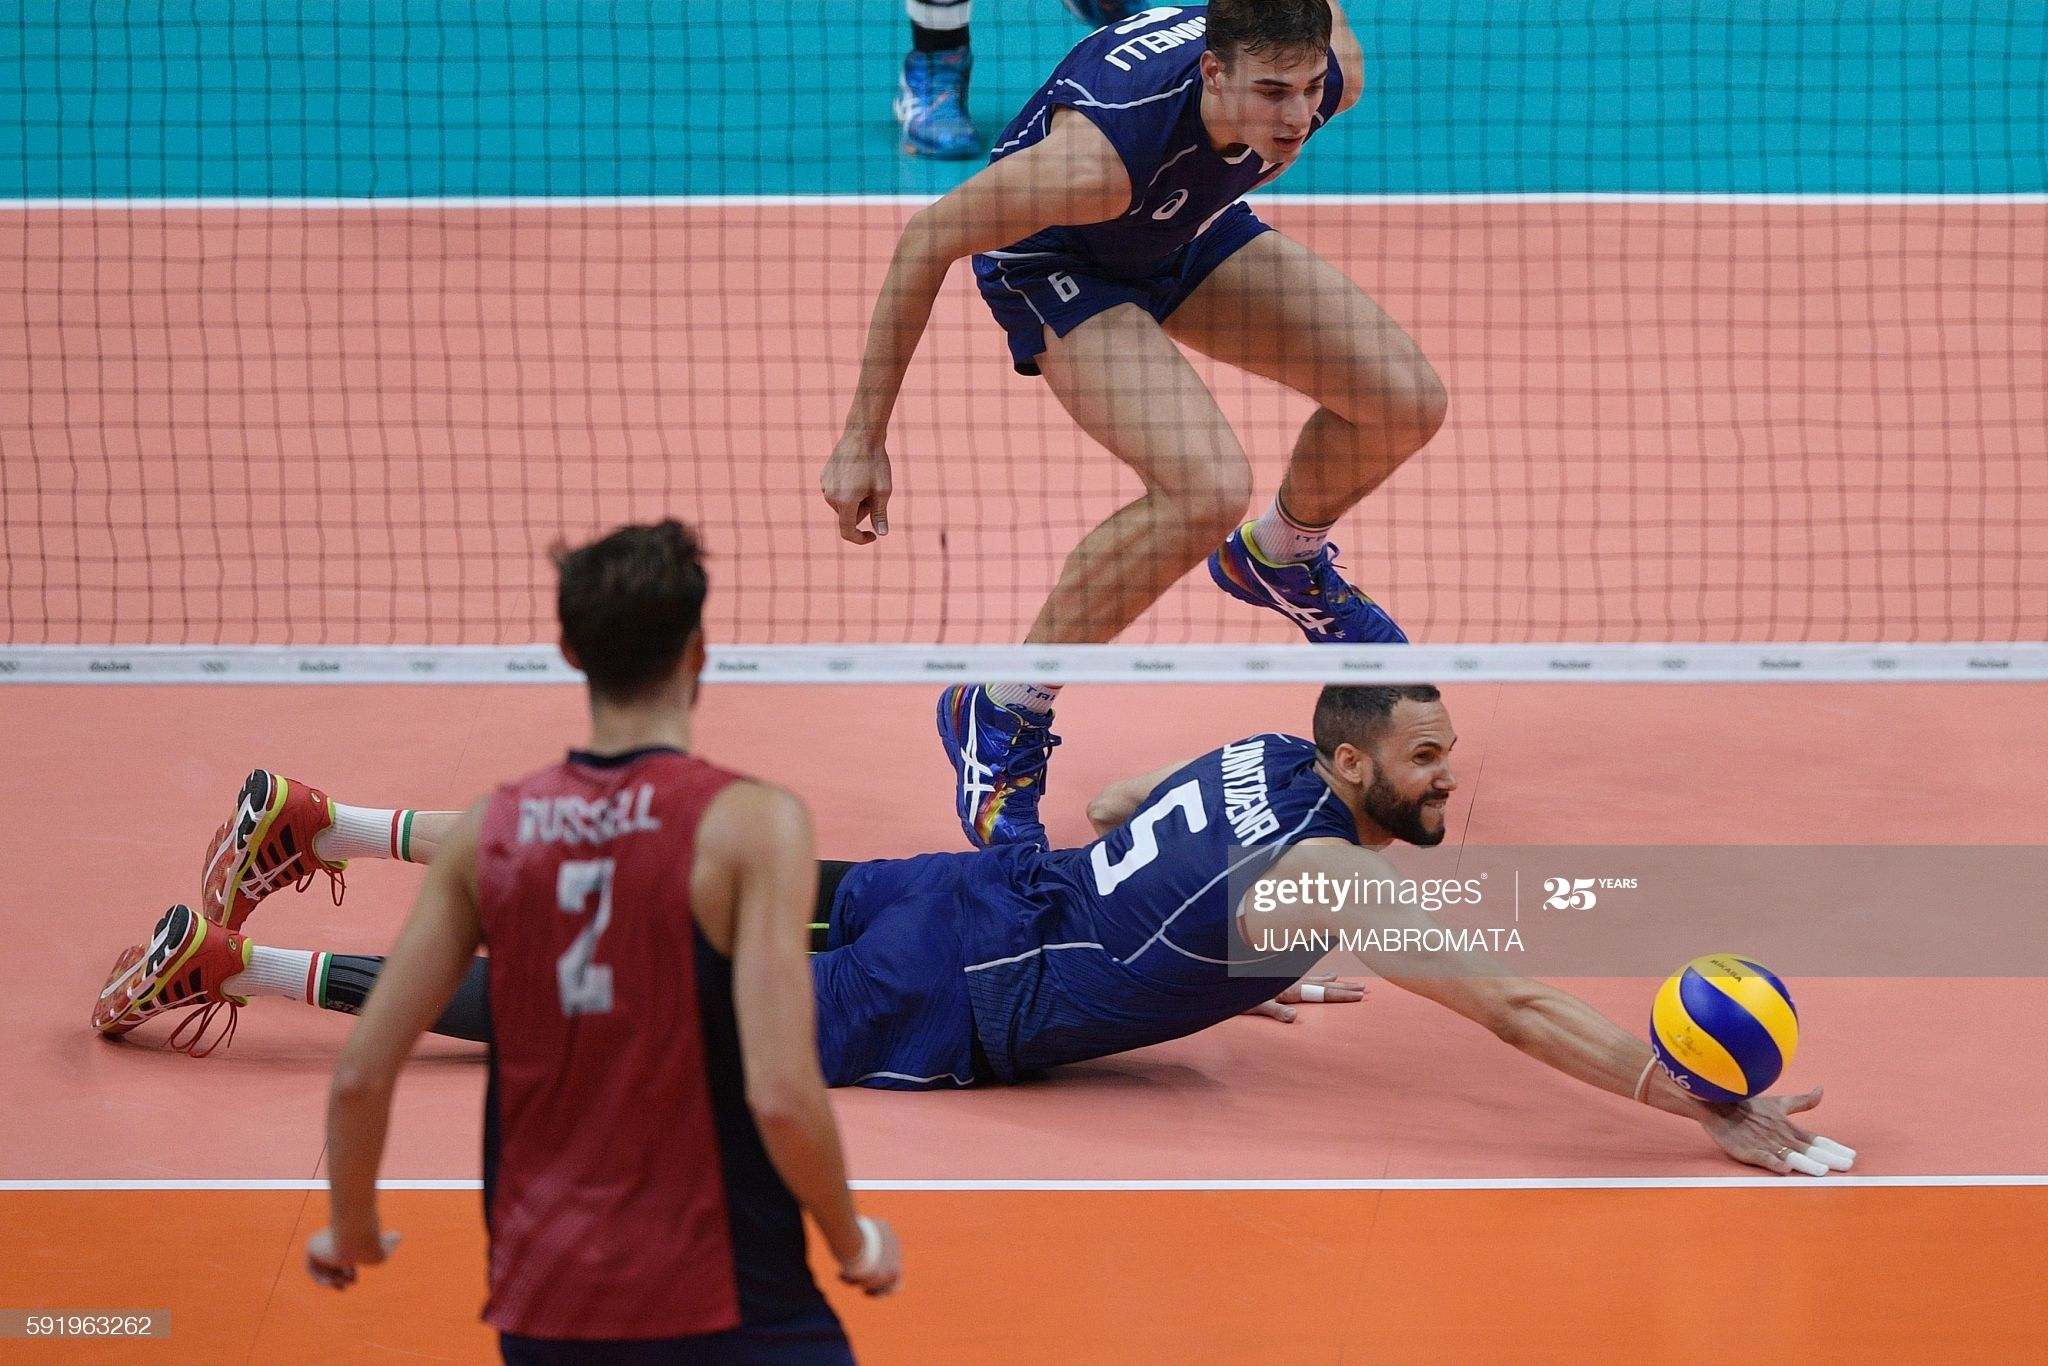 Italy S Osmany Juantorena Dives To Save The Ball During The Men S In 2020 Olympic Games Volleyball Rio Olympics 2016